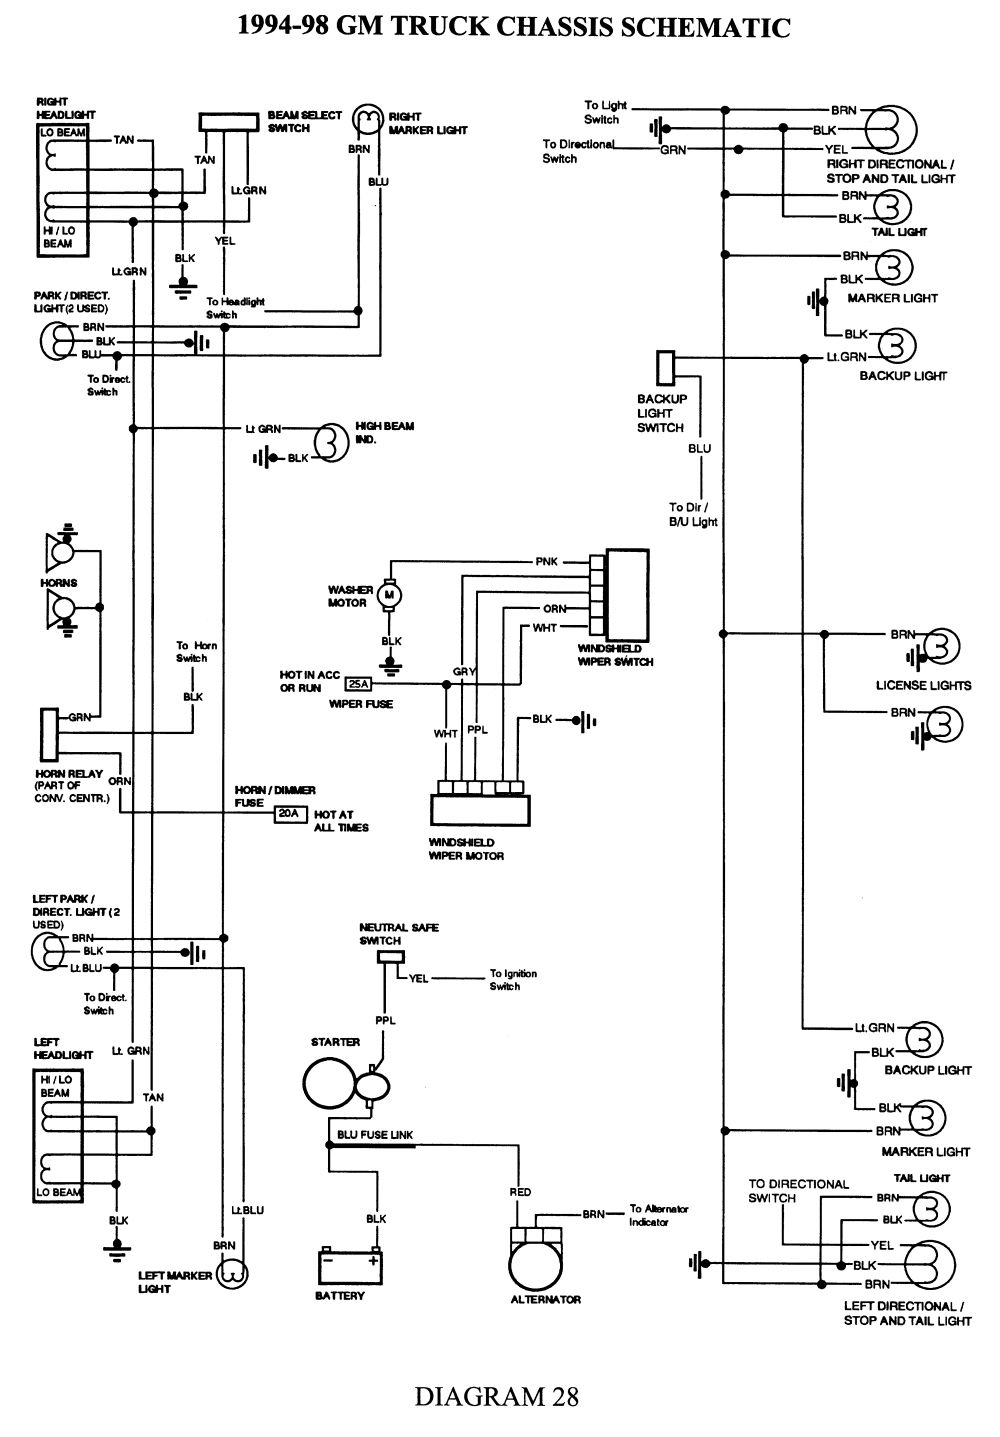 hight resolution of light wiring diagram 95 tahoe wiring diagram name 95 monte carlo wiring diagram